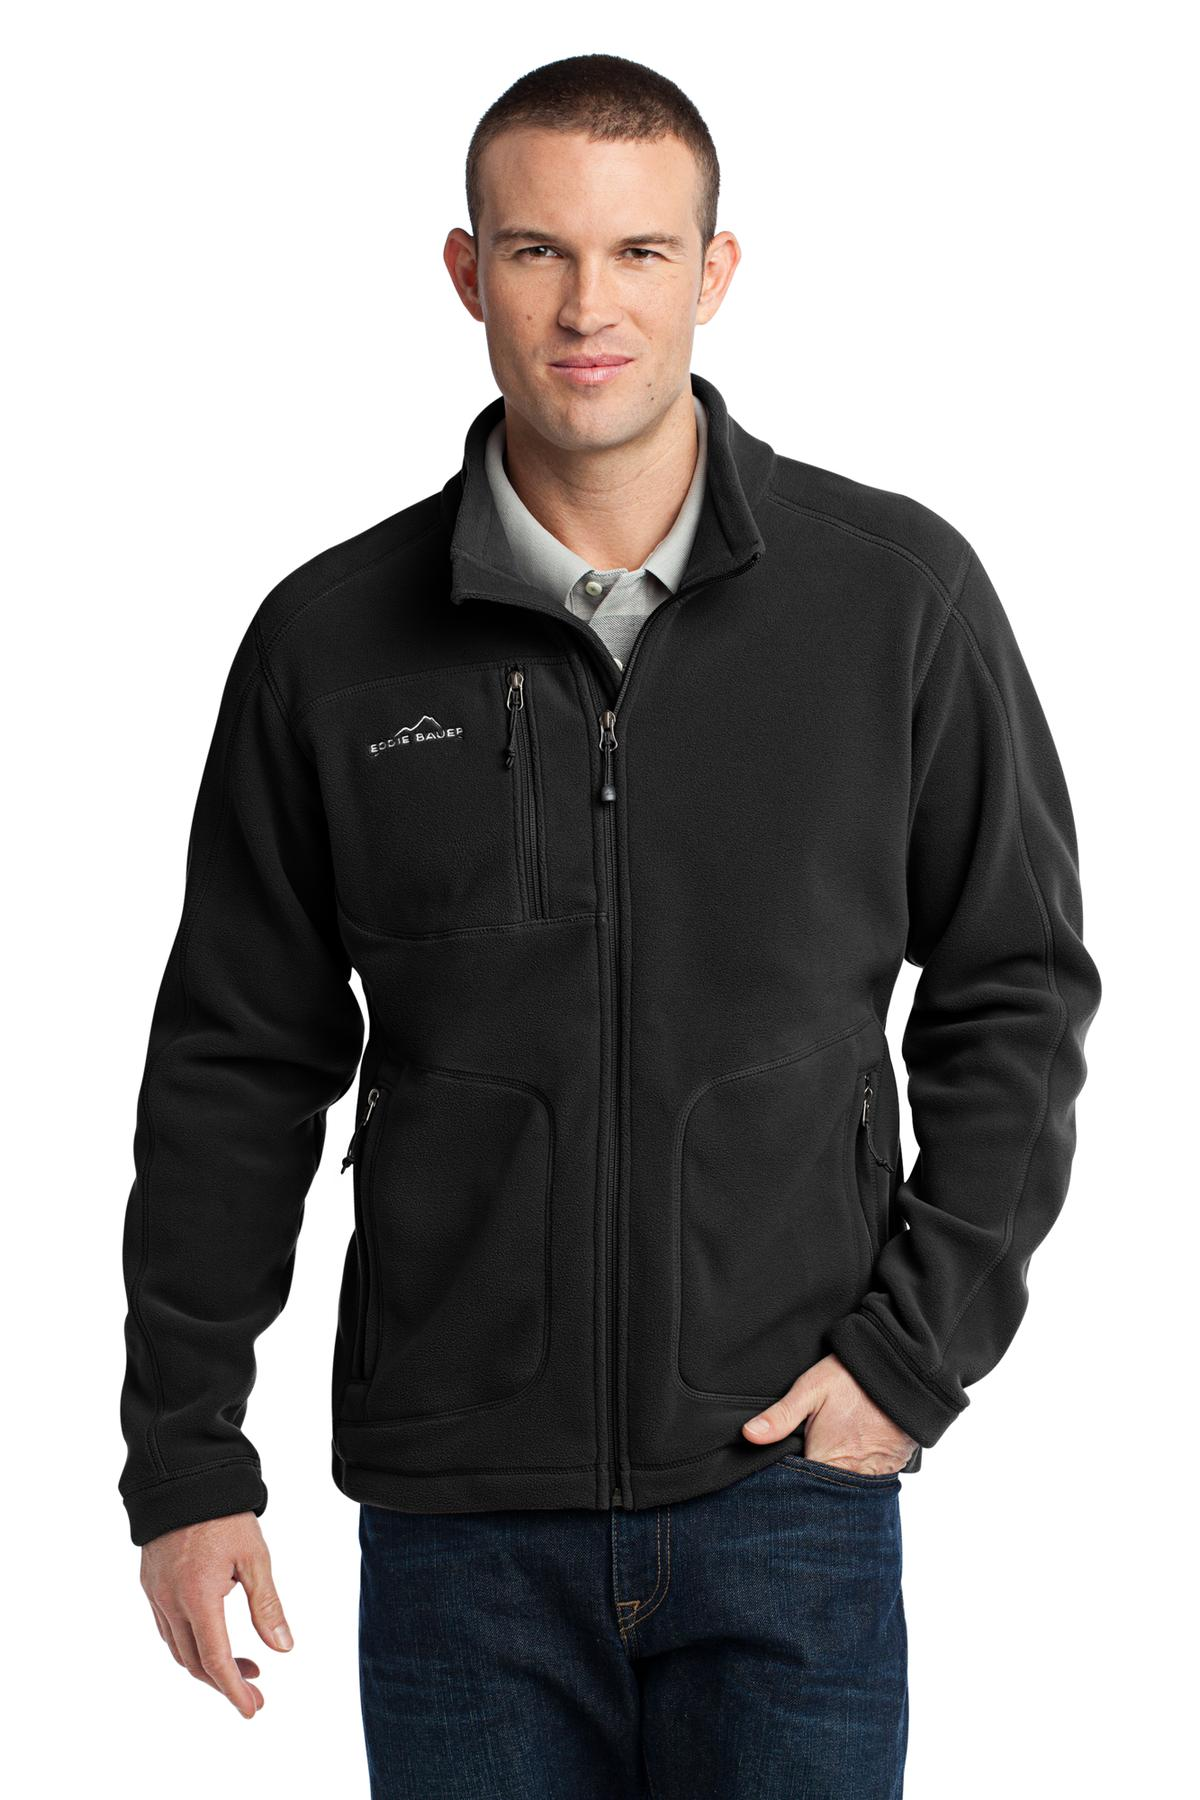 Outerwear-Polyester-Fleece-16